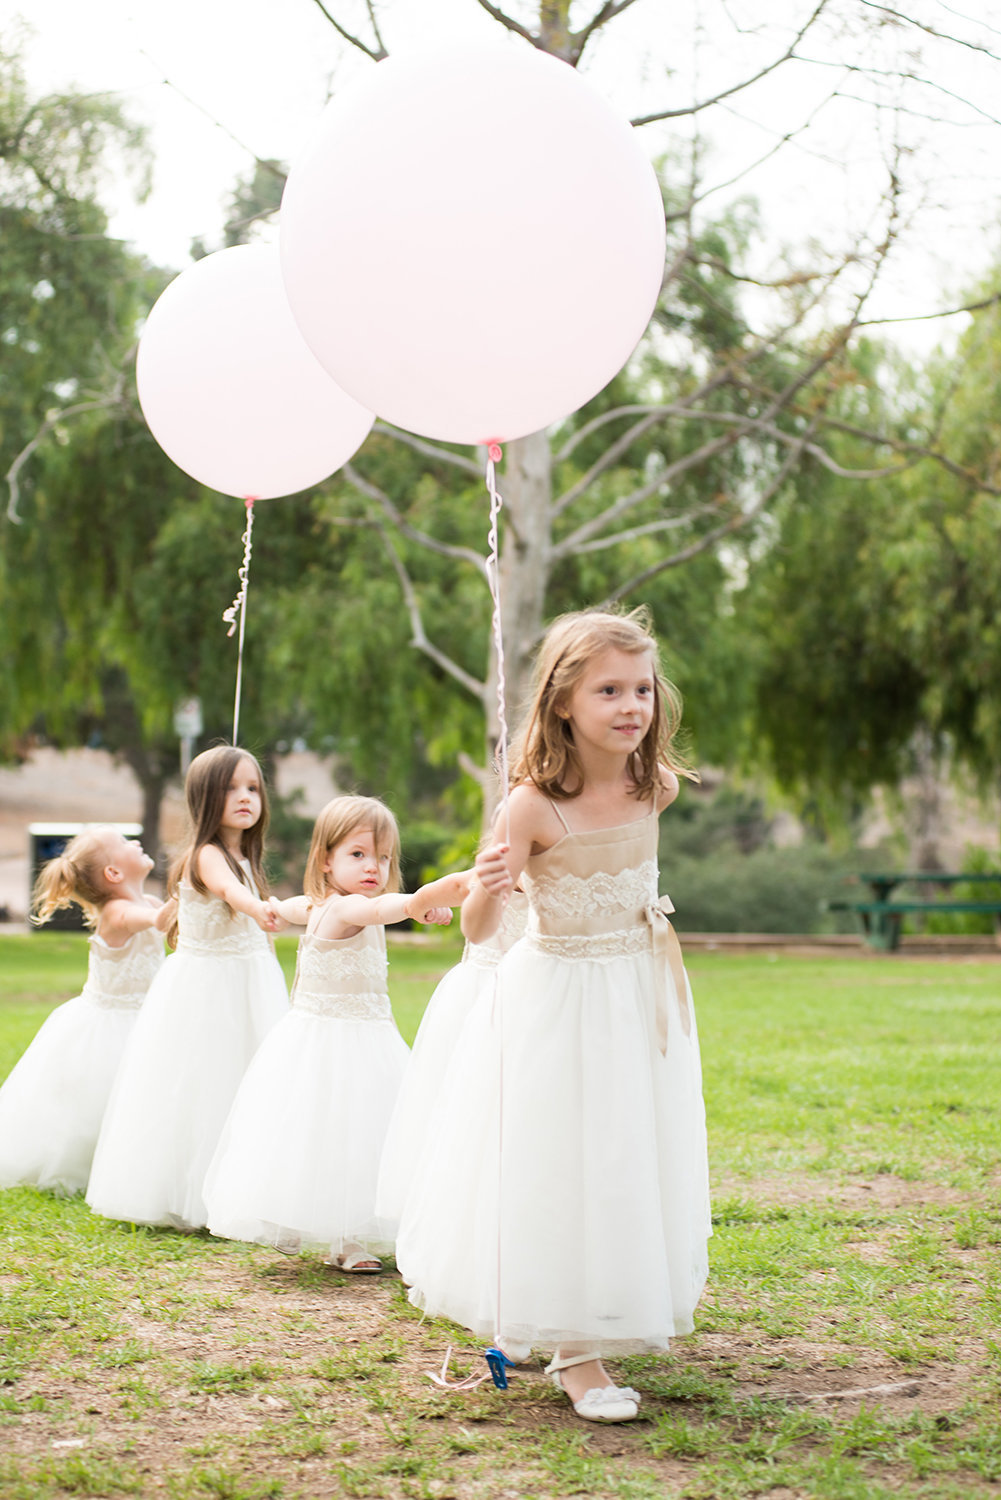 Flower girls make their entrance at an outdoor wedding ceremony